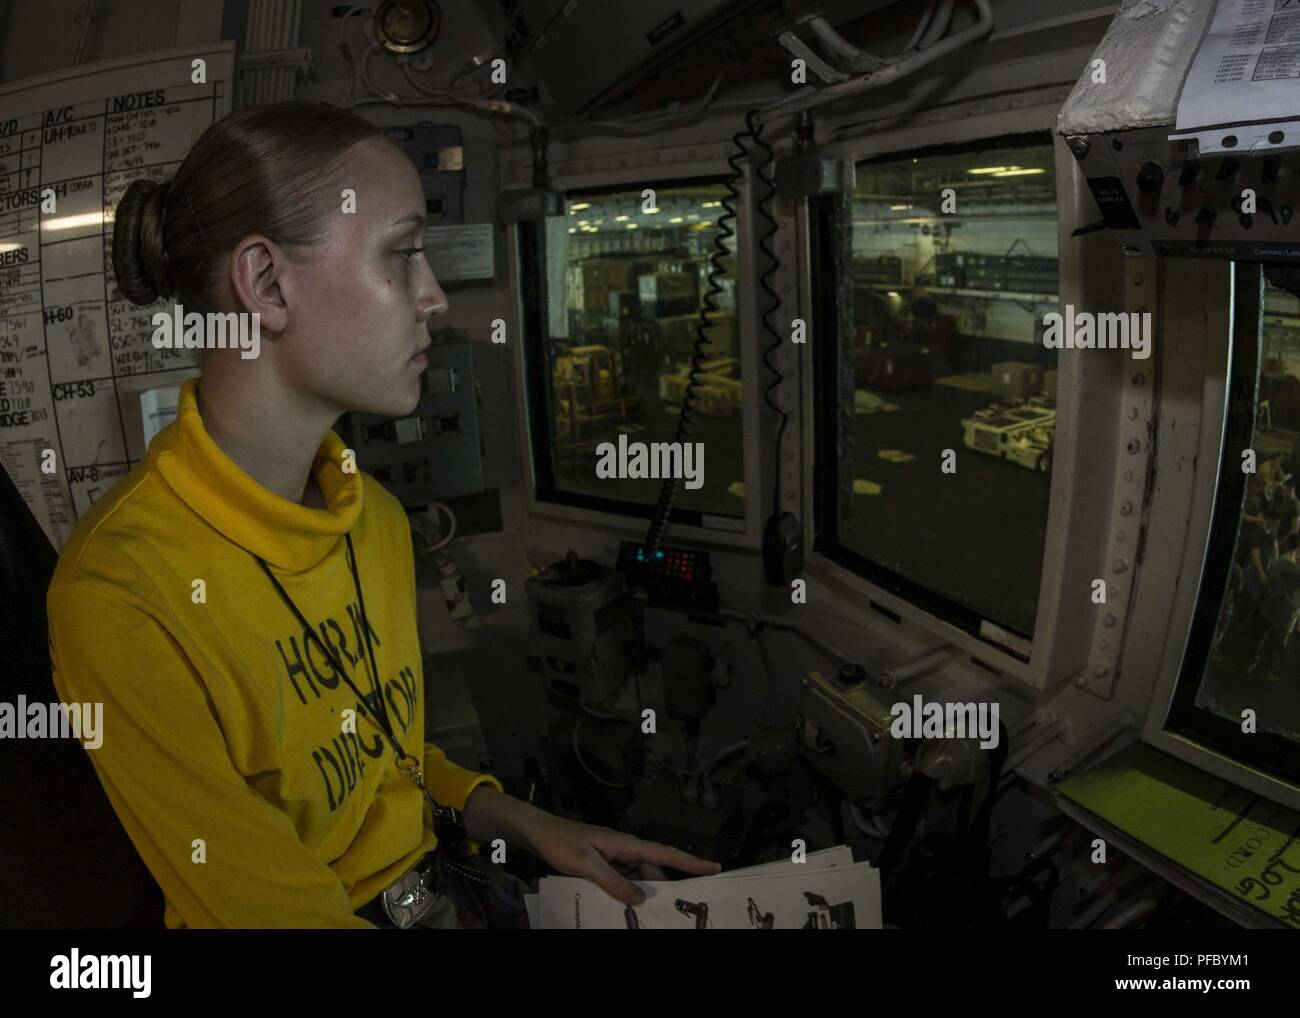 5th FLEET AREA OF OPERATIONS (June 7, 2018) Aviation Boatswain's Mate (Handling) Airman Joley Vessell stands Conflag Station 7 watch in hangar deck control aboard the Wasp-class amphibious assault ship USS Iwo Jima (LHD 7), June 7, 2018. Iwo Jima, homeported in Mayport, Fla., is on deployment to the U.S. 5th Fleet area of operations in support of maritime security operations to reassure allies and partners, and preserve the freedom of navigation and the free flow of commerce in the region. Stock Photo